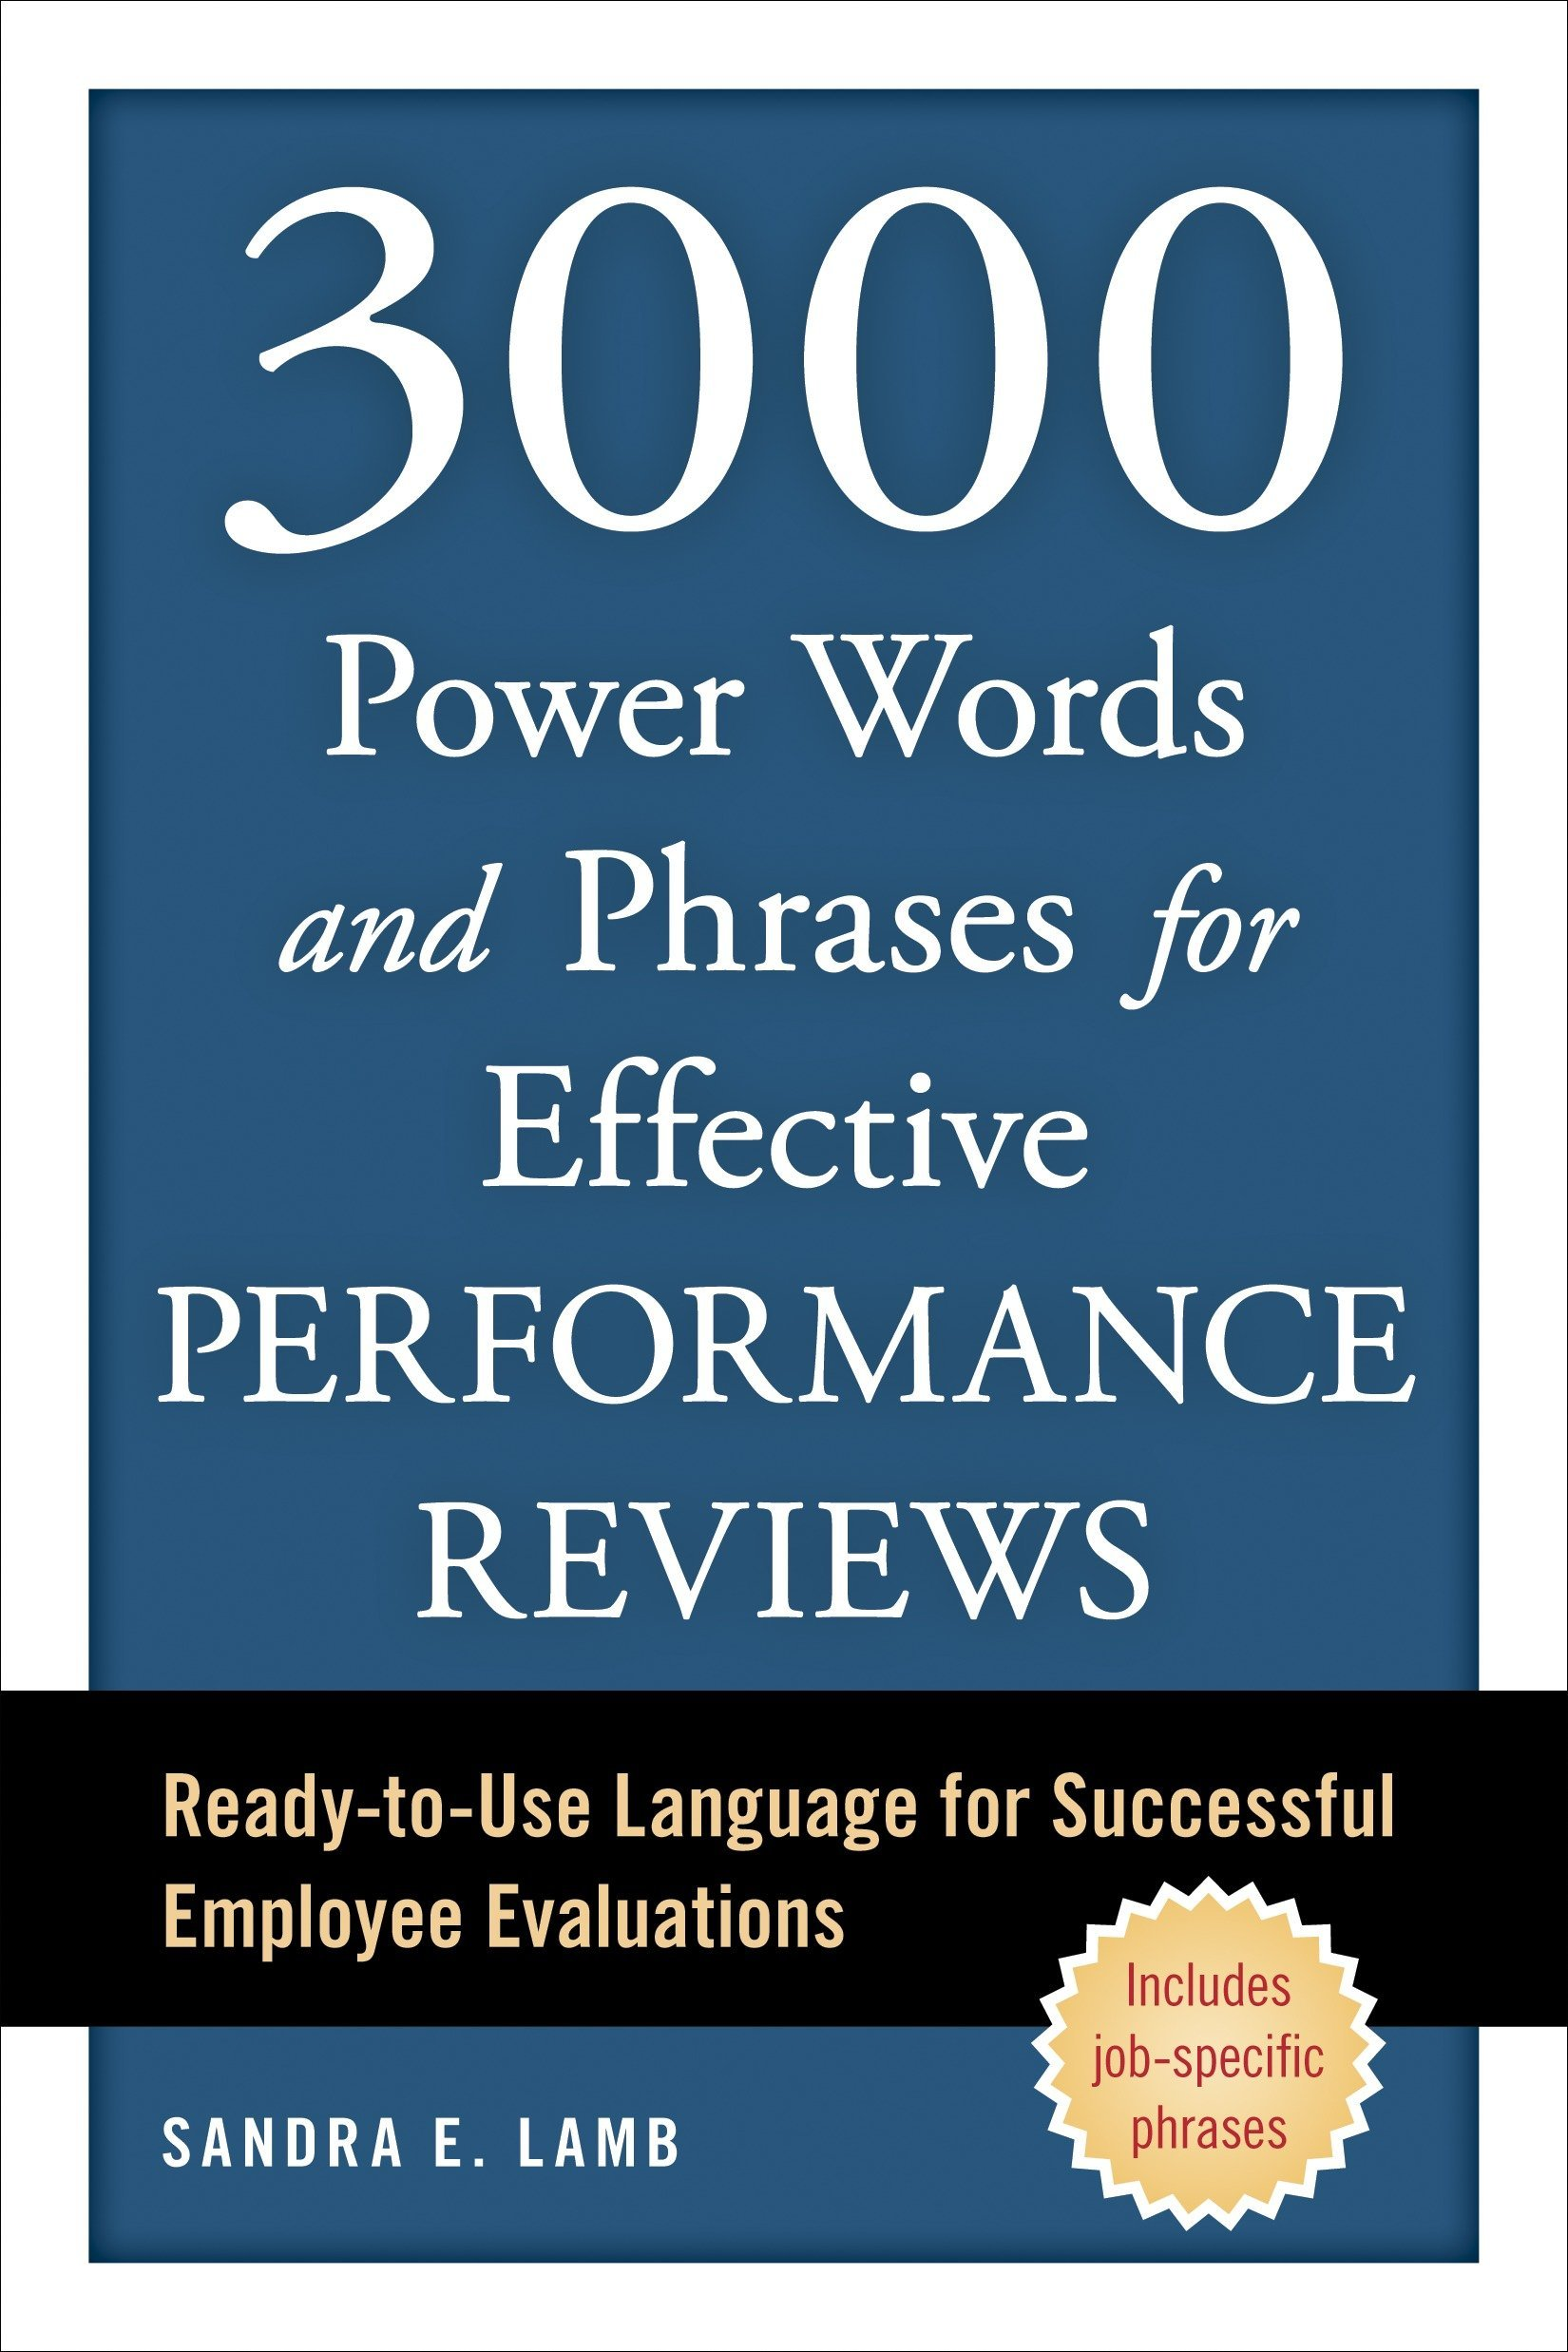 3000 Power Words and Phrases for Effective Performance Reviews: Ready-to-Use Language for Successful Employee Evaluations by Brand: Ten Speed Press